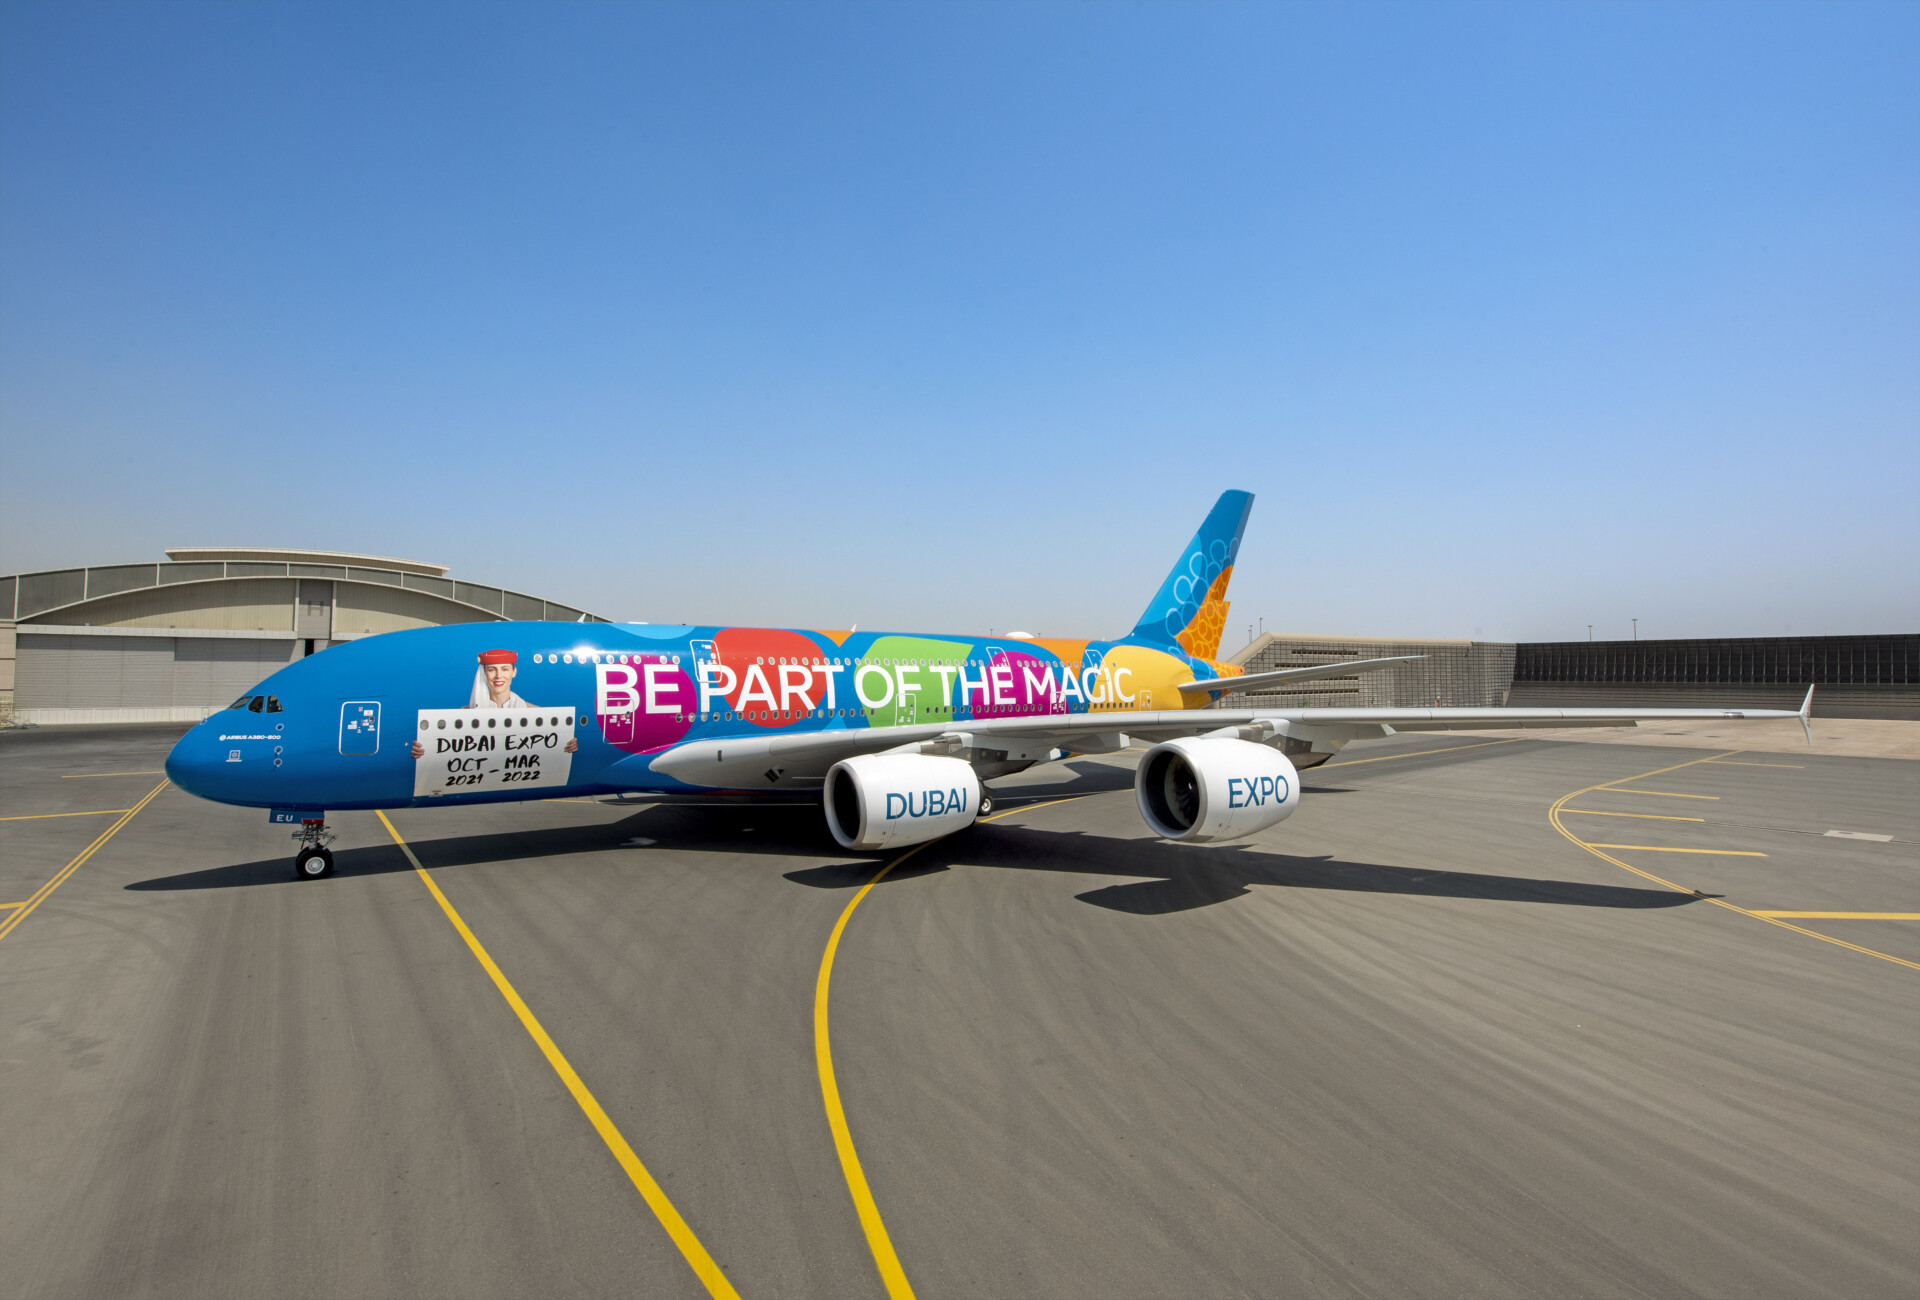 Emirates, Airbus A380, Expo Livery